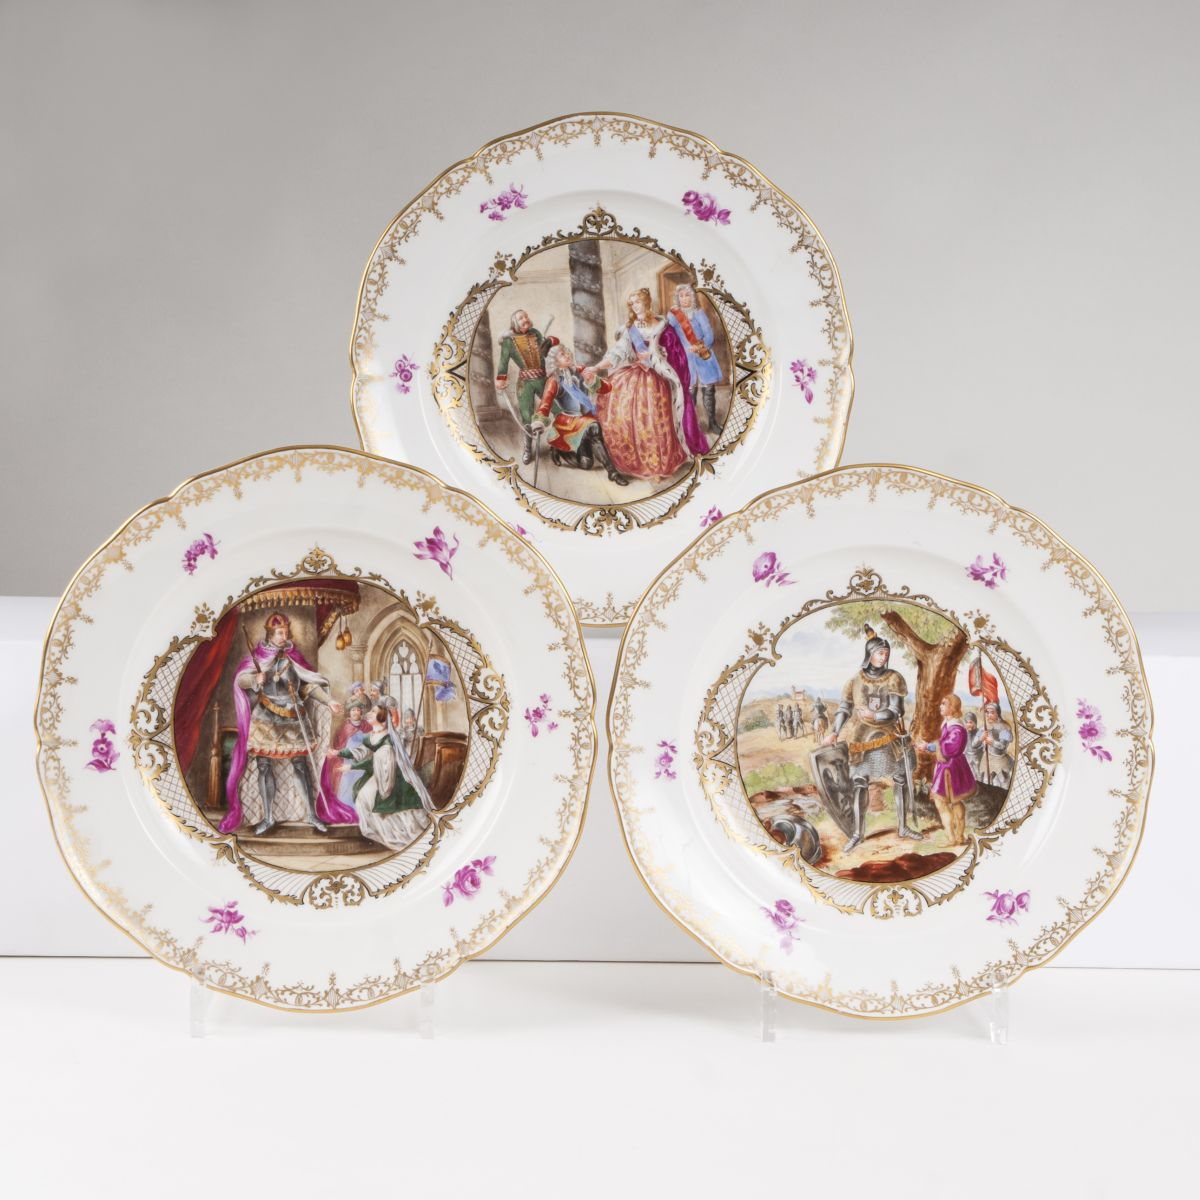 A set of 12 plates with historical scenes of life from 'Louis the Brandenburg''